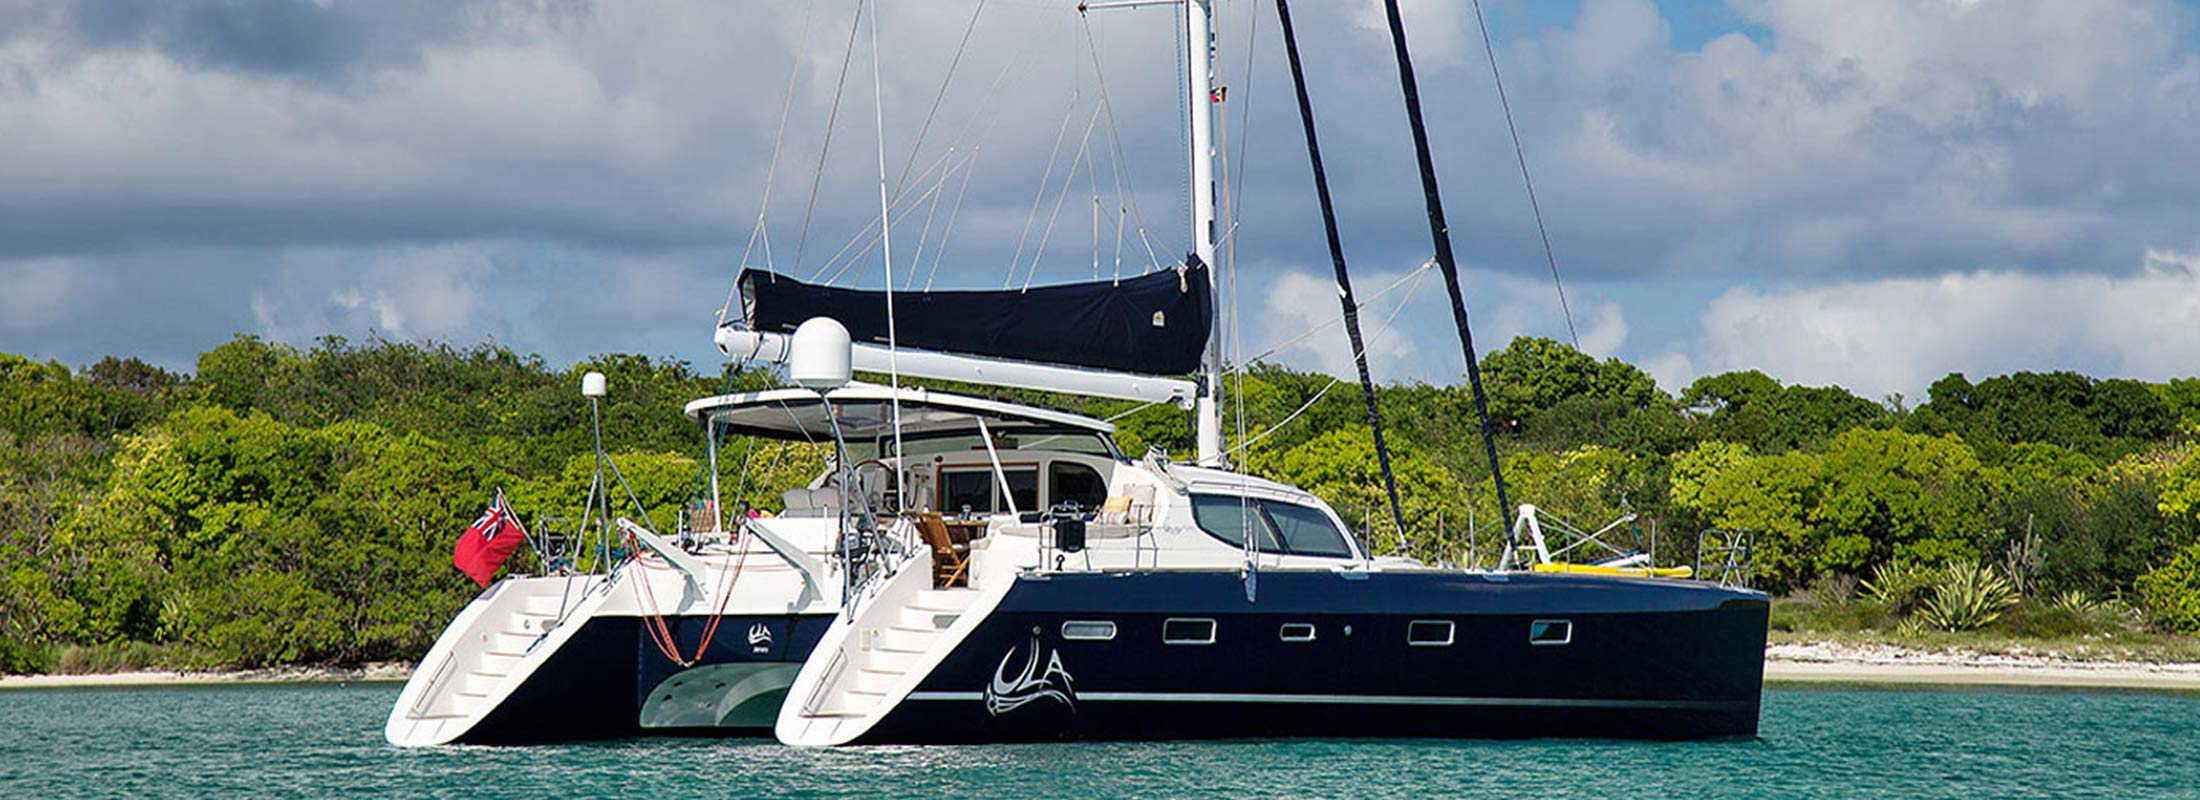 Ula Sailing Yacht for Charter Caribbean Sea slider 1